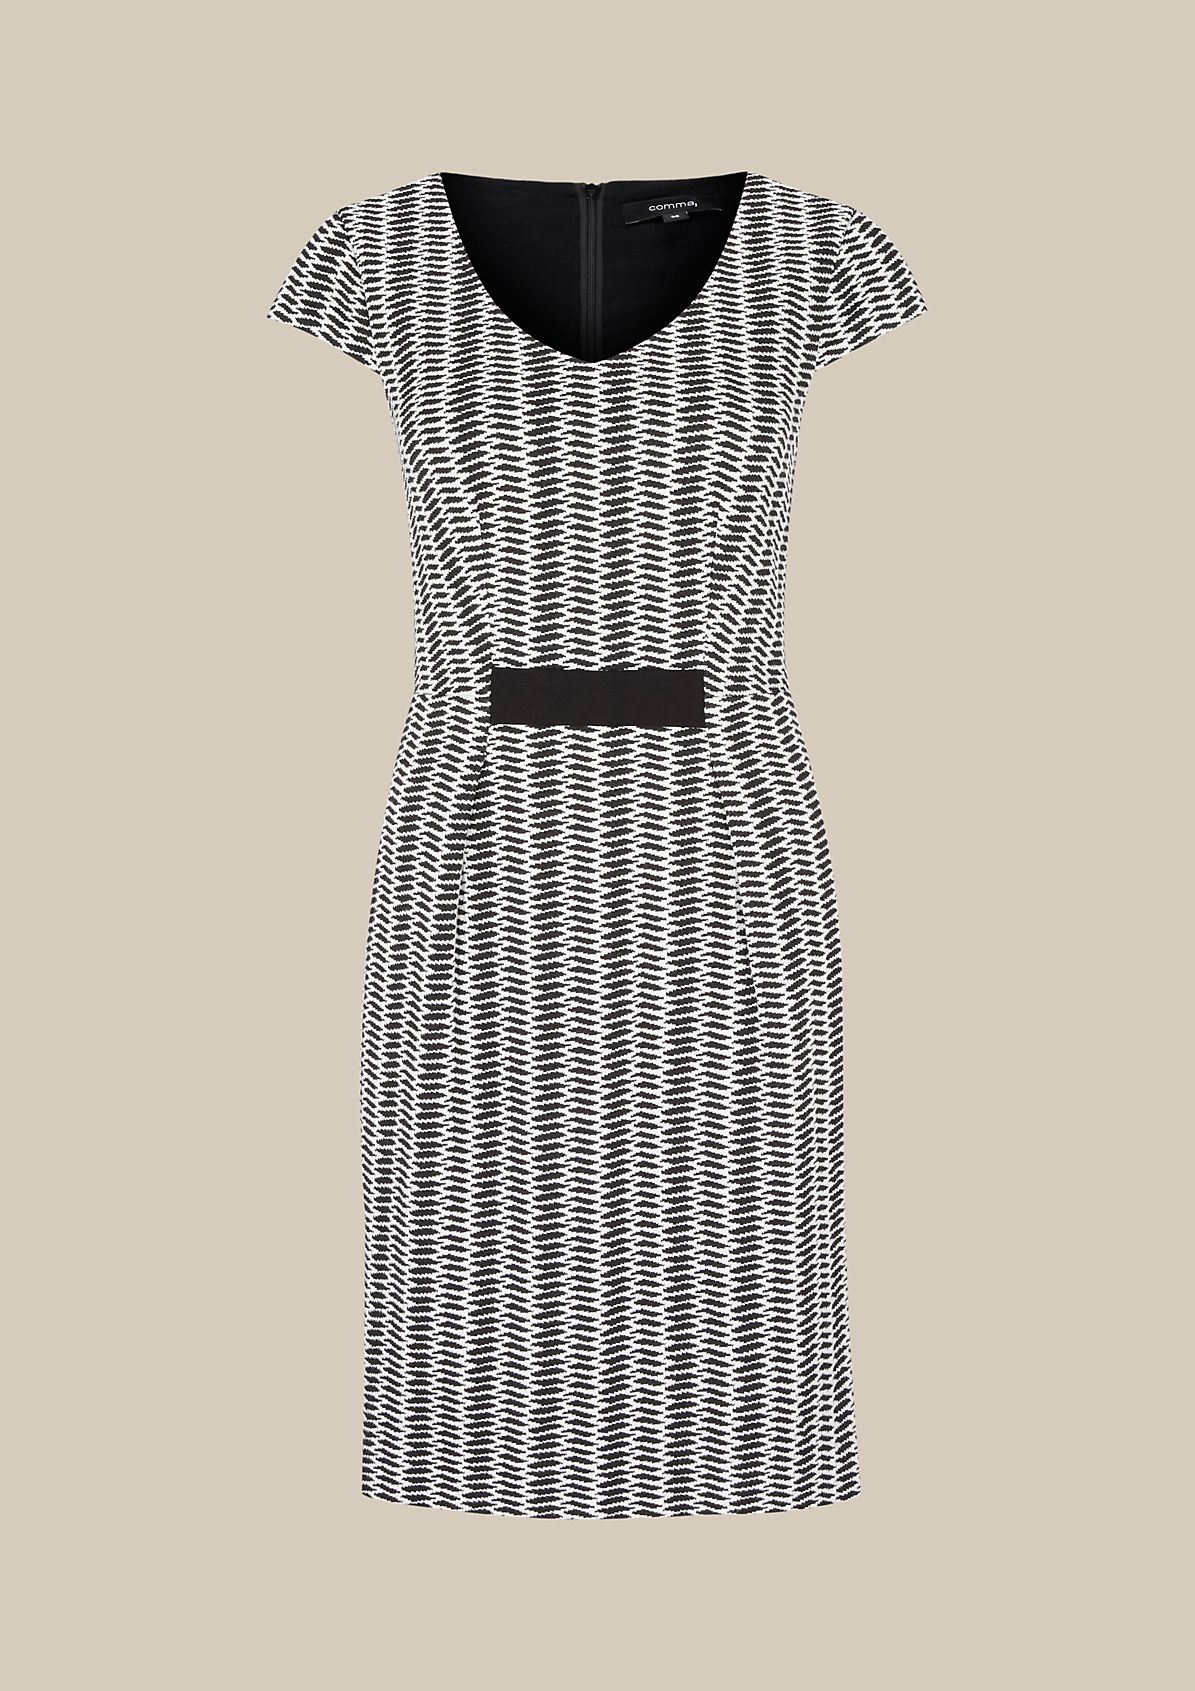 Elegant dress with a fine jacquard pattern from s.Oliver